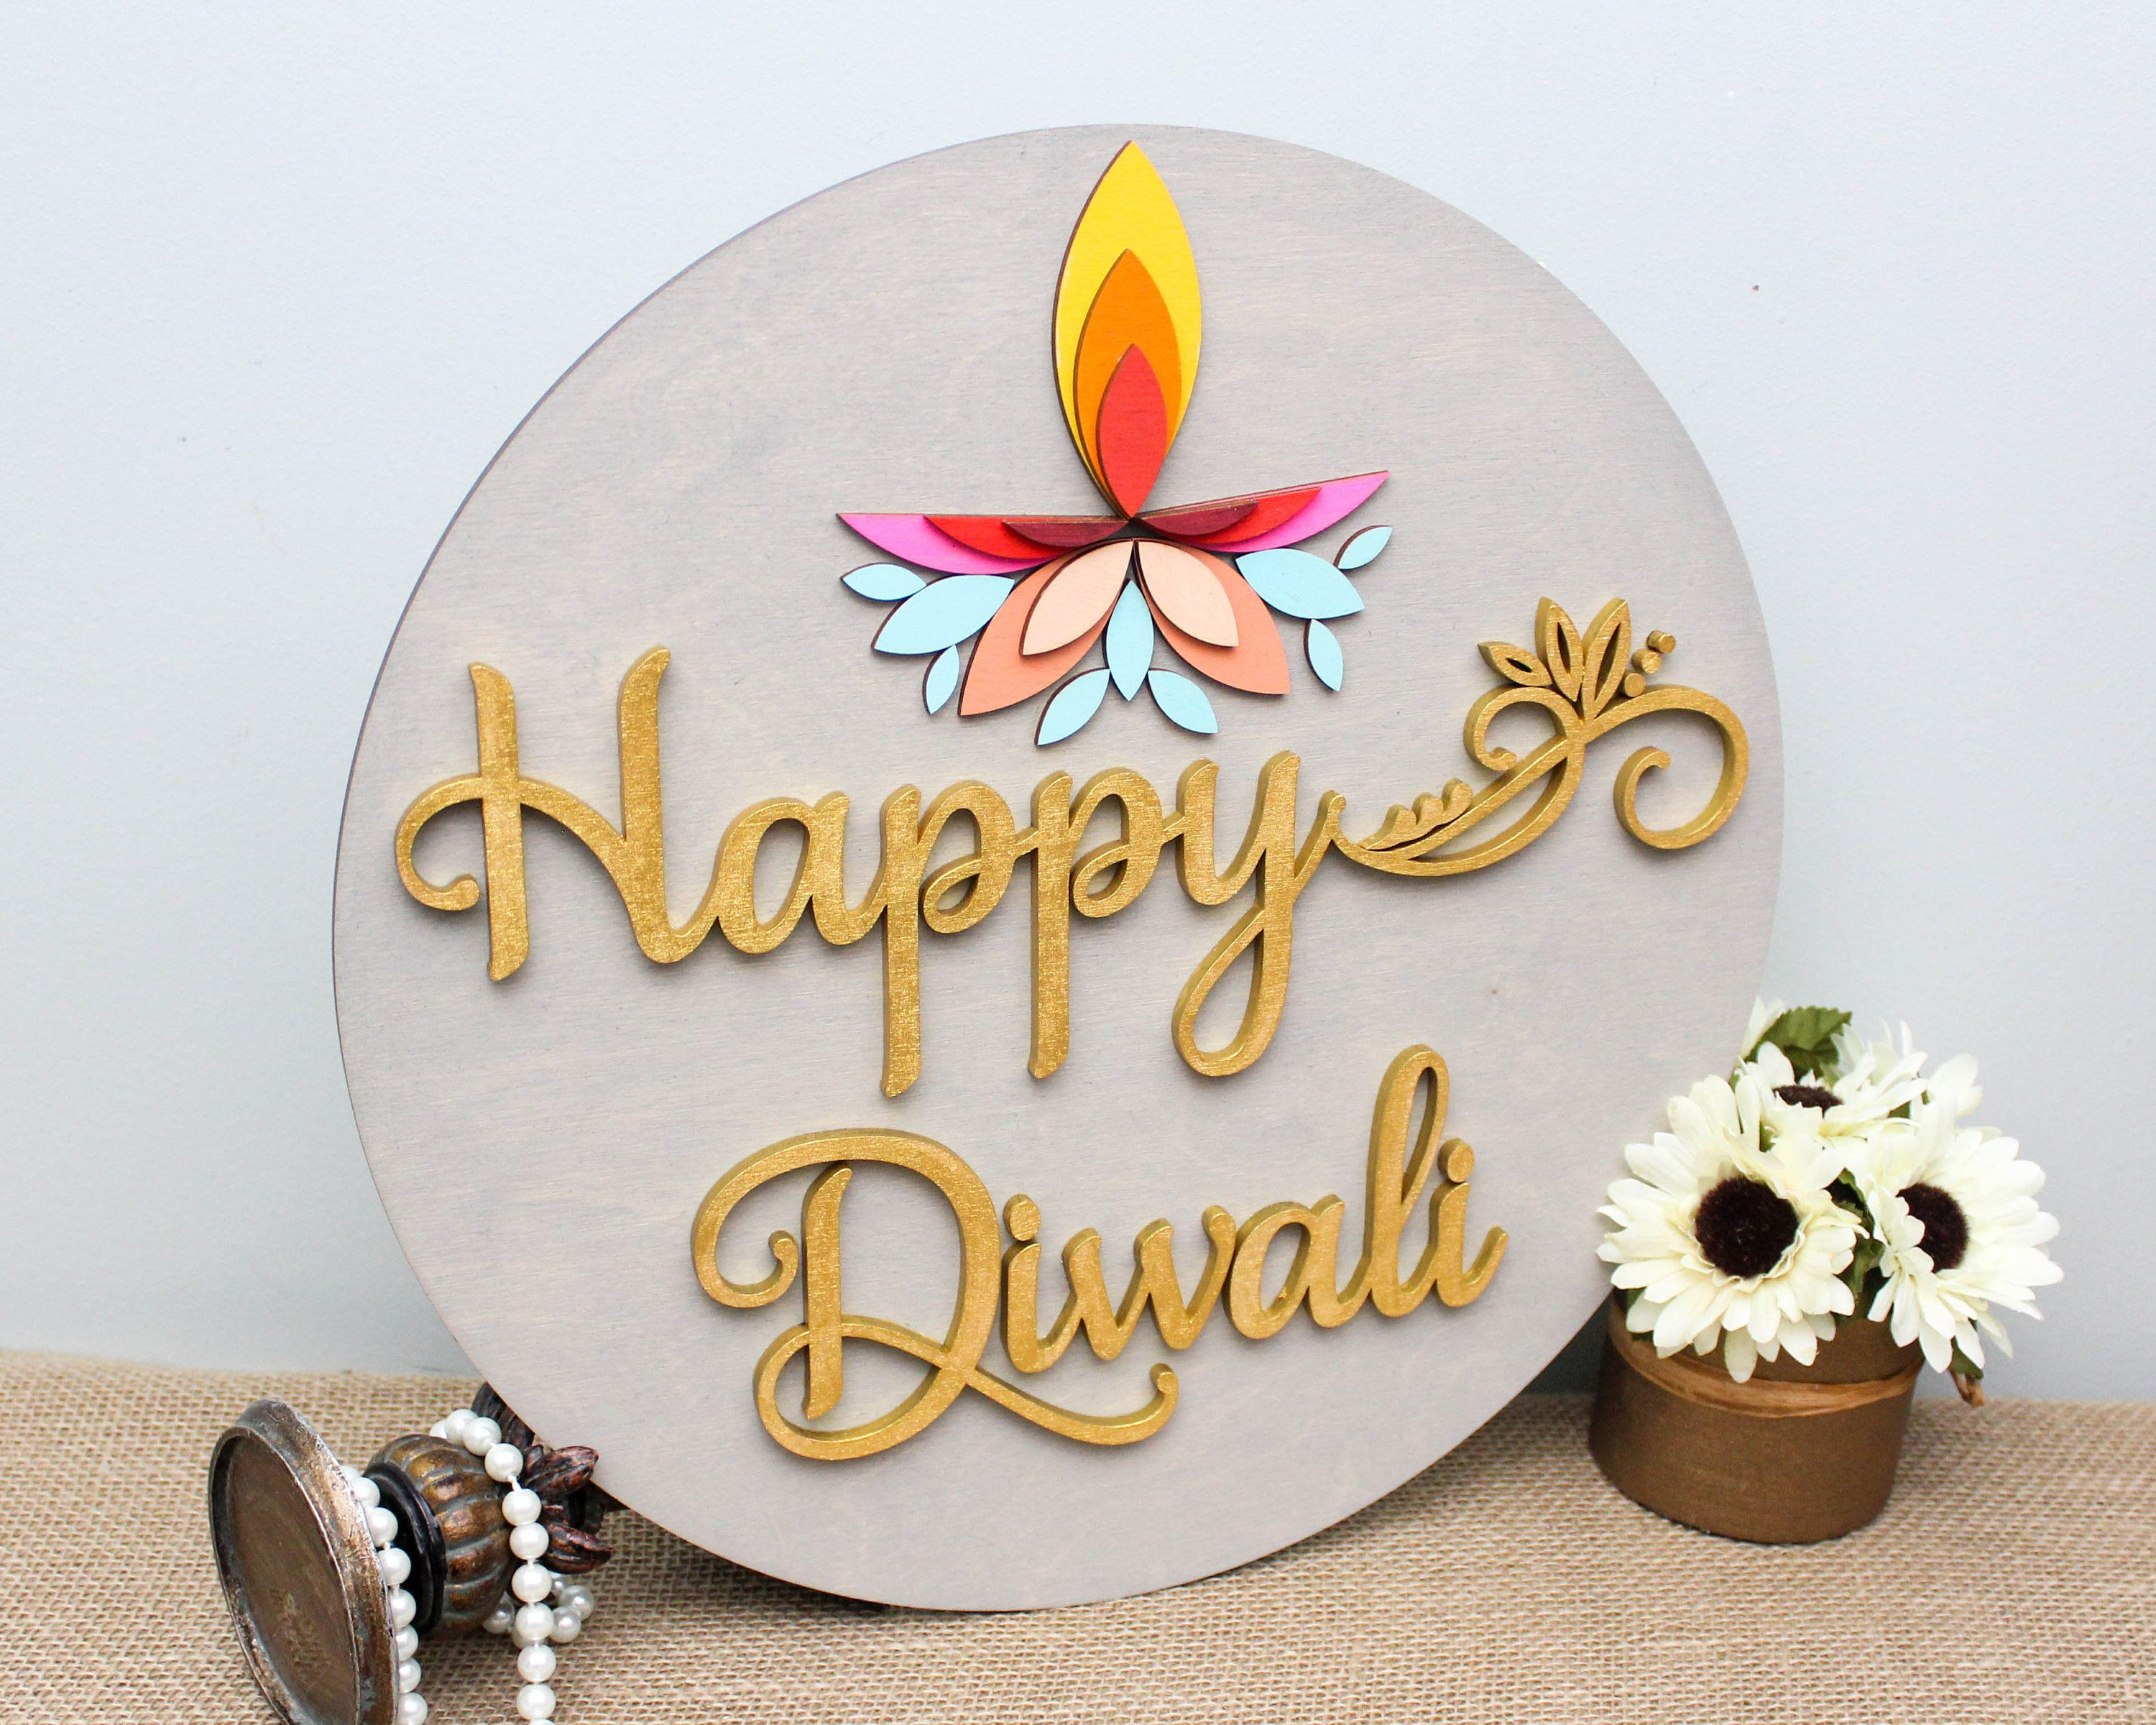 Happy Diwali Decoration, Diwali Gifts, Diwali Decor, Deepavali Diya Decor, Diwali Signs, Hindu Festival of Lights, Indian Home Decor